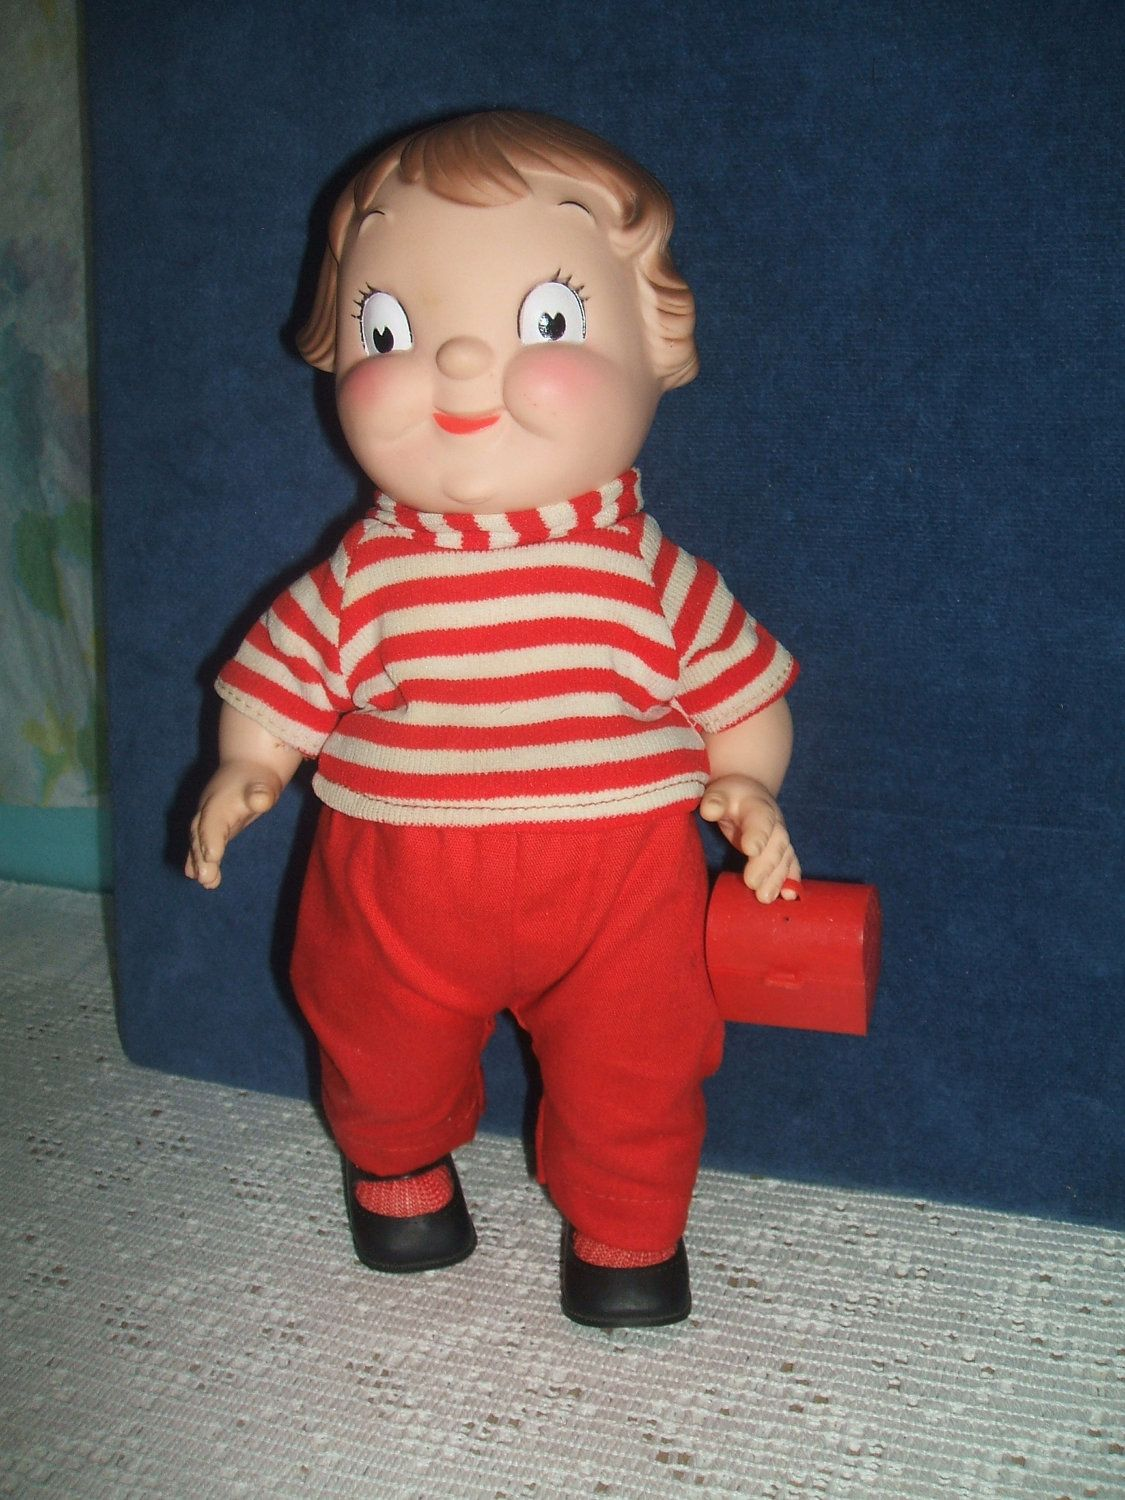 Campbell Soup Advertising Boy Doll Campbell Soup Boy Doll Vintage Advertisements